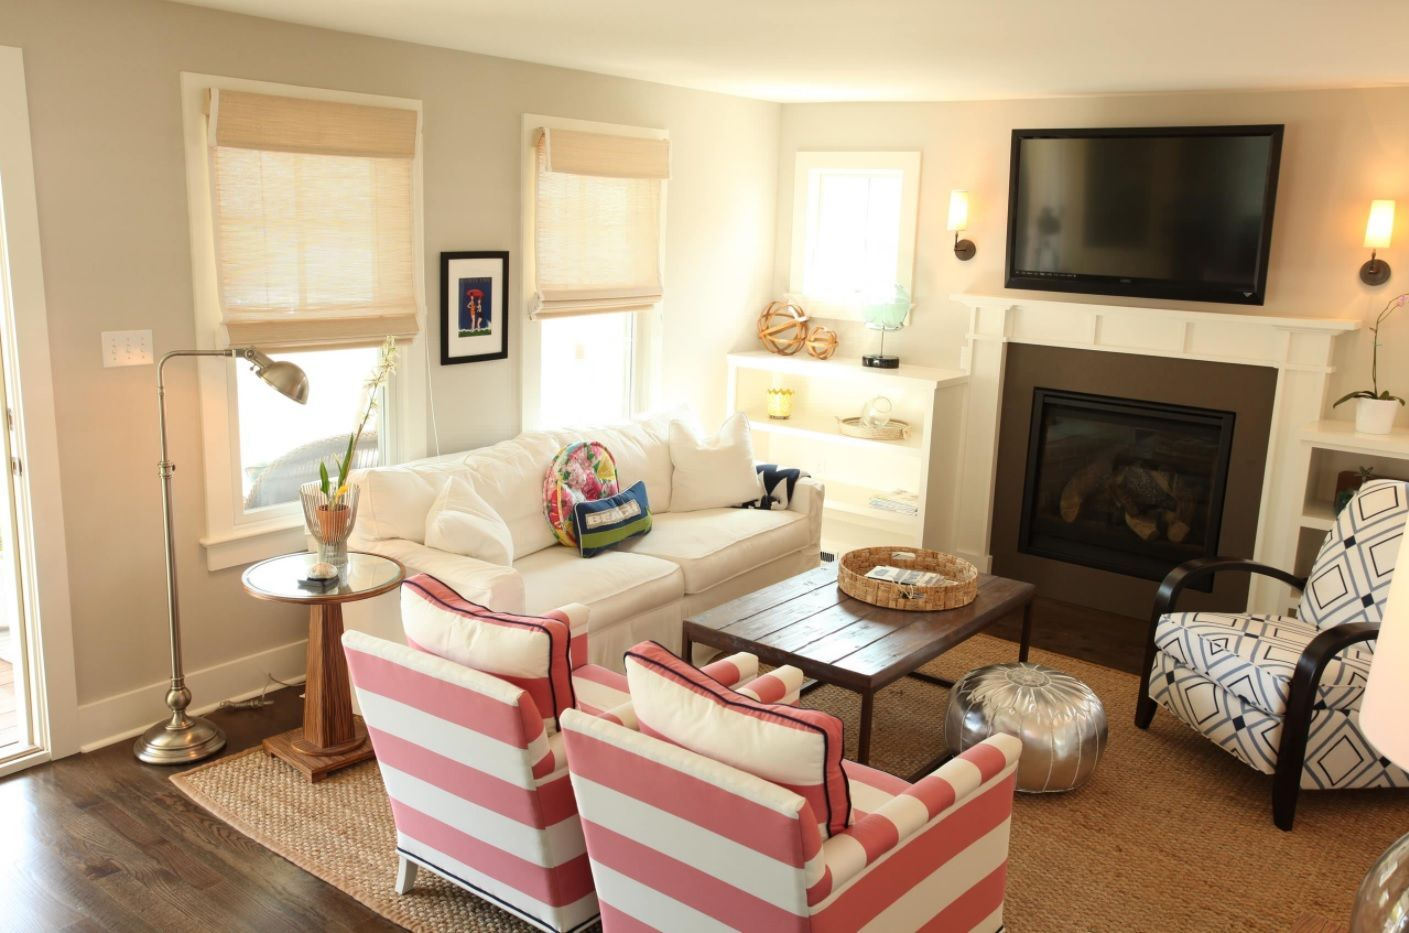 Living Room Layout Design & Decoration Ideas. Classic style in the small room with many windows, fierplace and TV-set